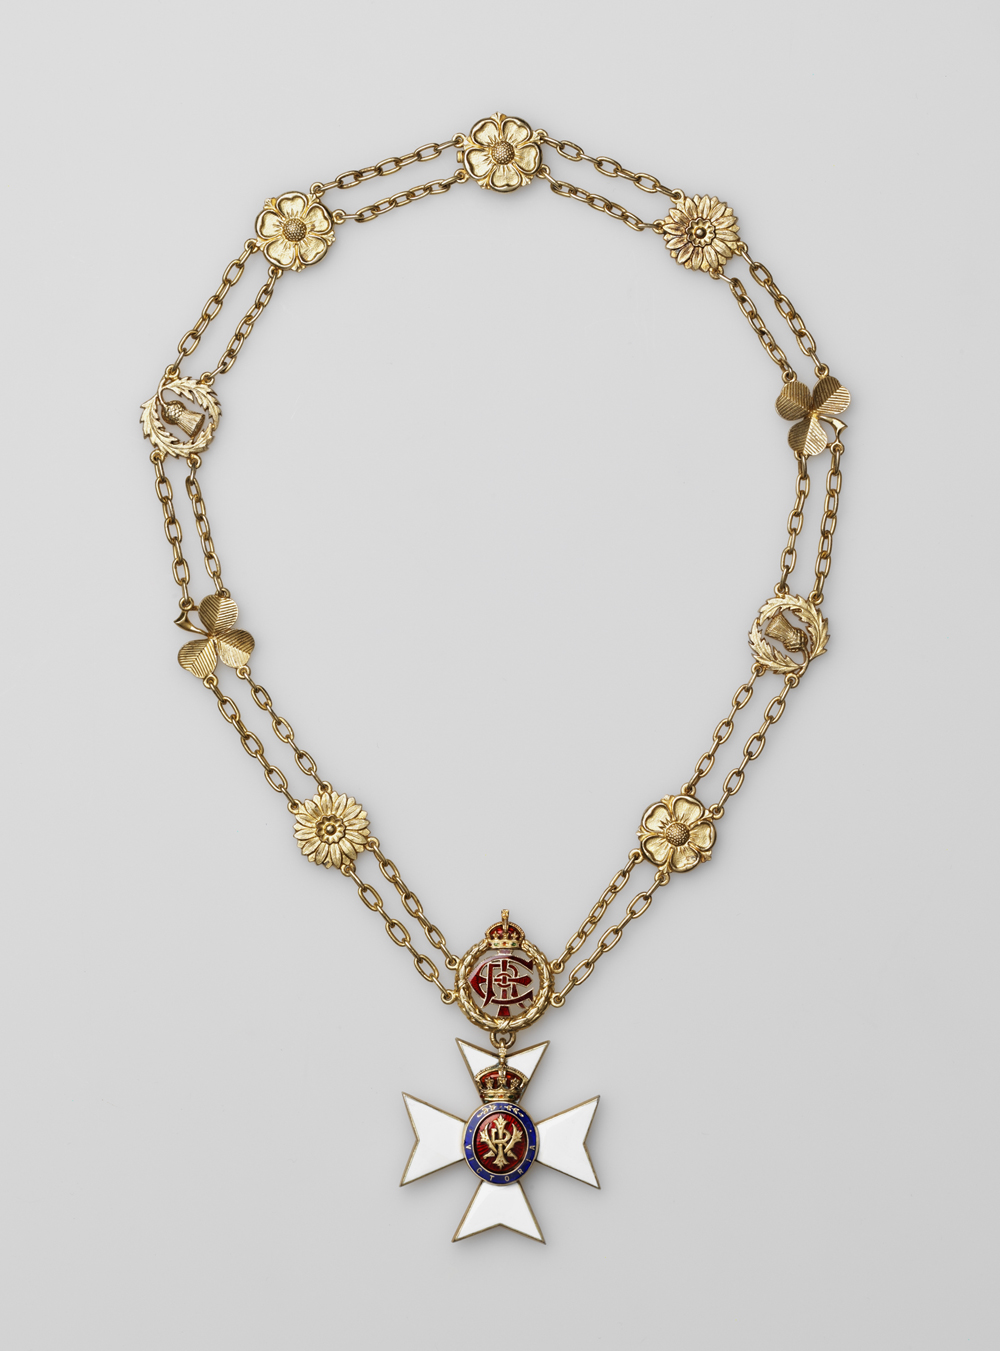 Collier royal de Victoria.